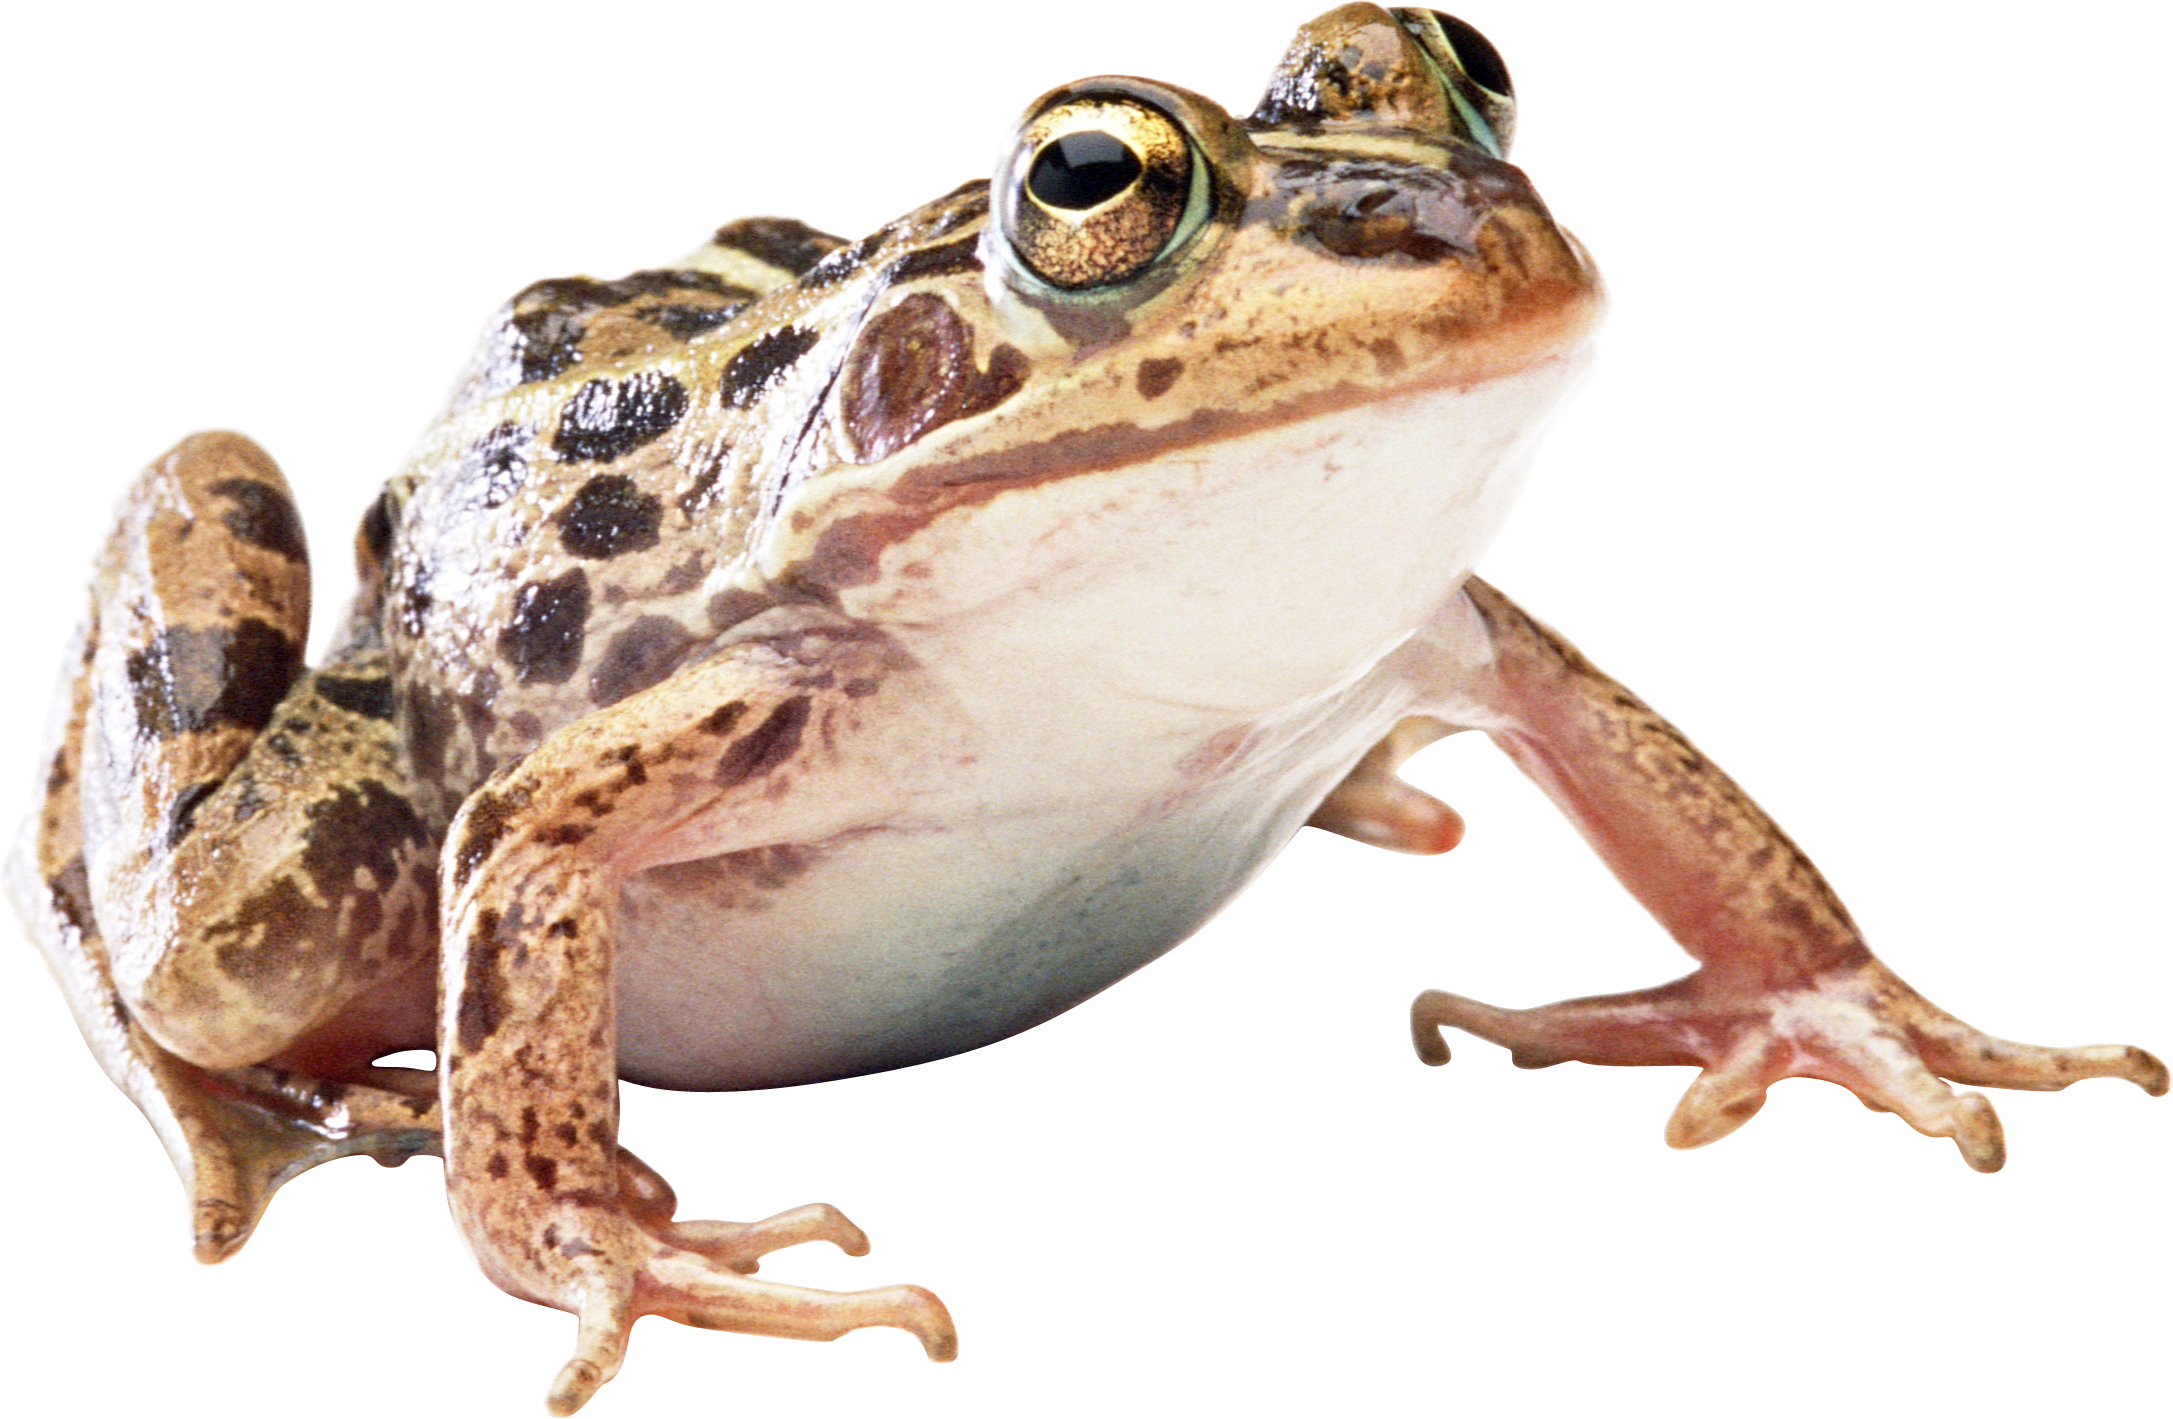 Download Png Image Frog Png Image Frog Animals Images Frog Pictures